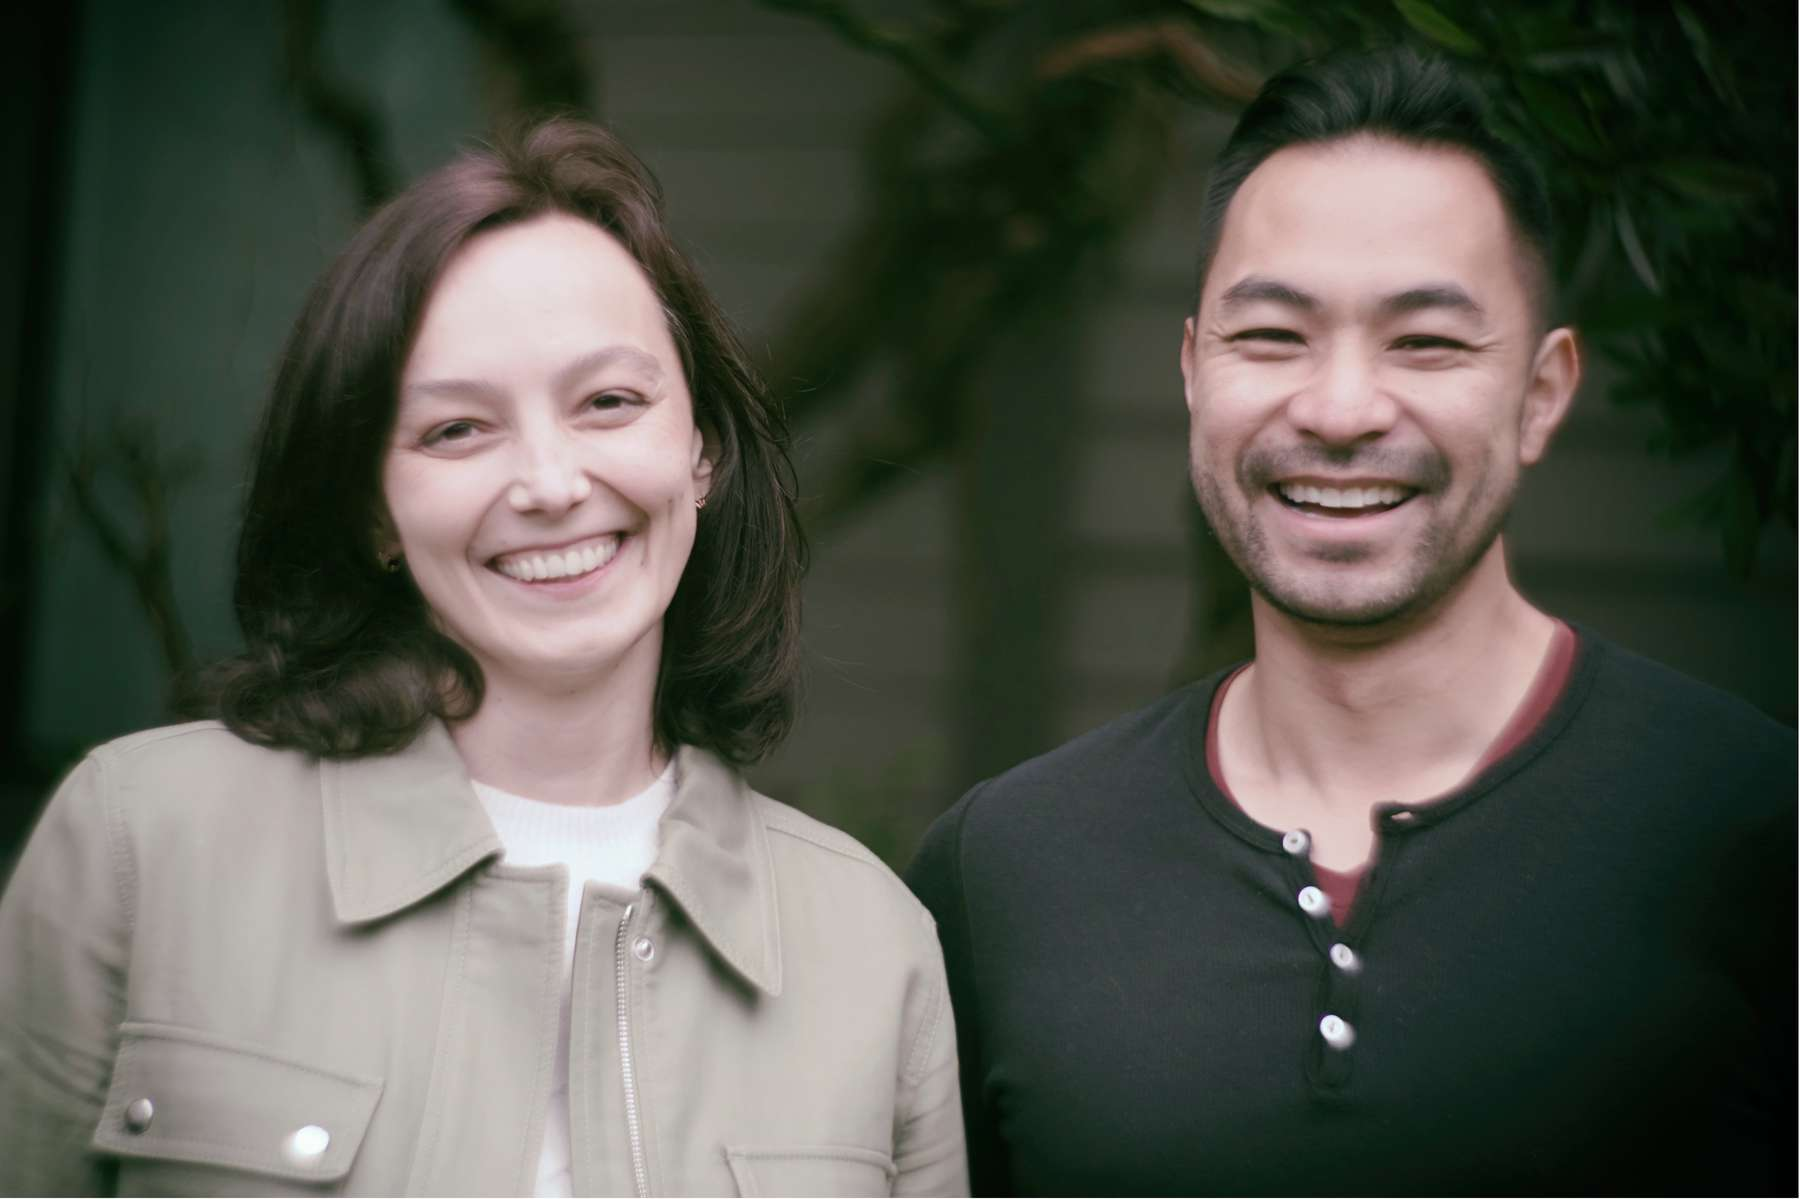 Sanlo co-founders Olya Sivers (left) & William Liu (right)